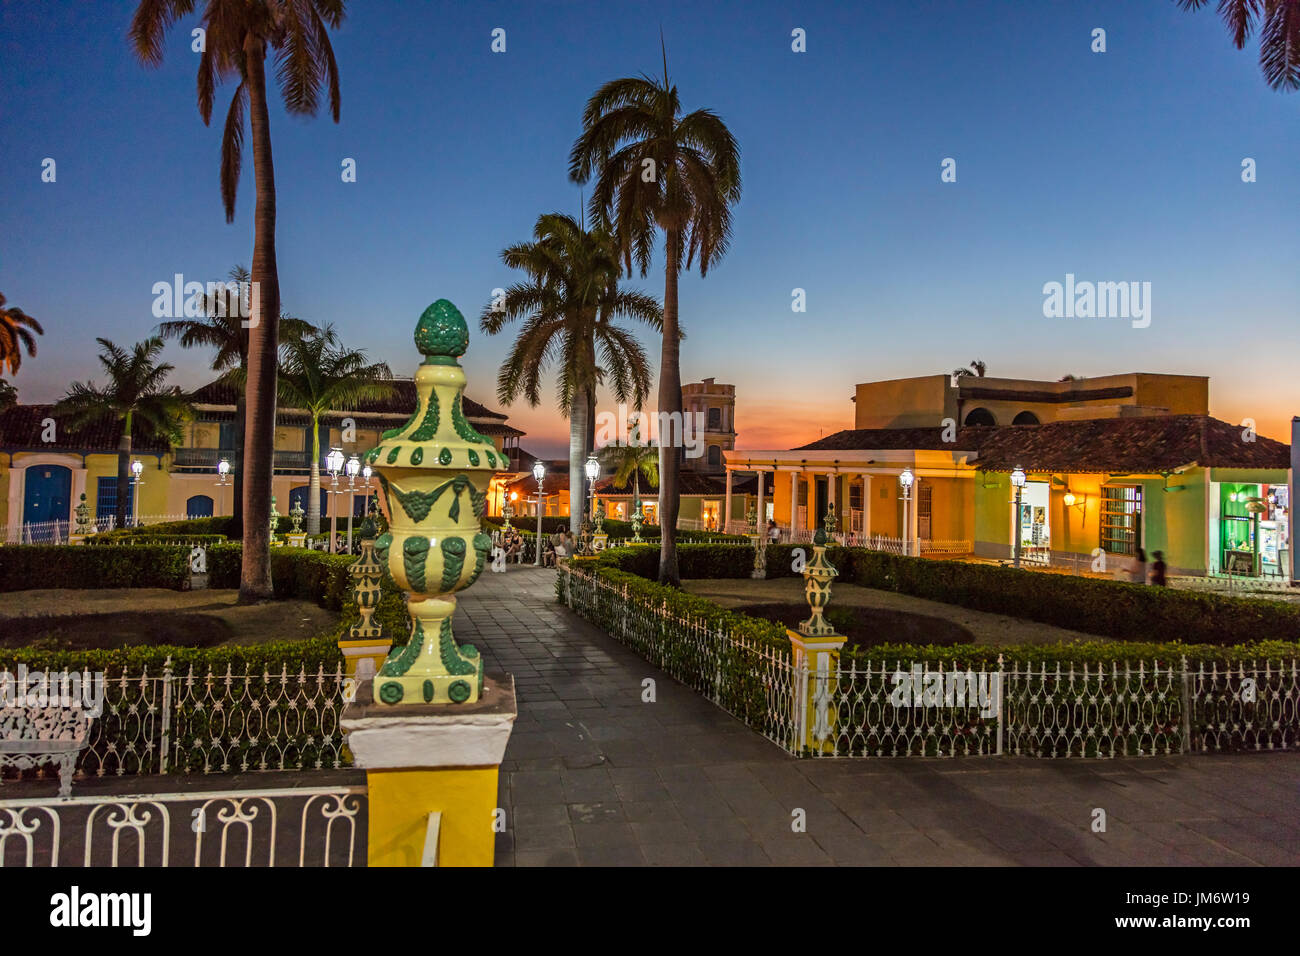 Palm trees and historic buildings on the PLAZA MAYOR at dusk - TRINIDAD, CUBA - Stock Image